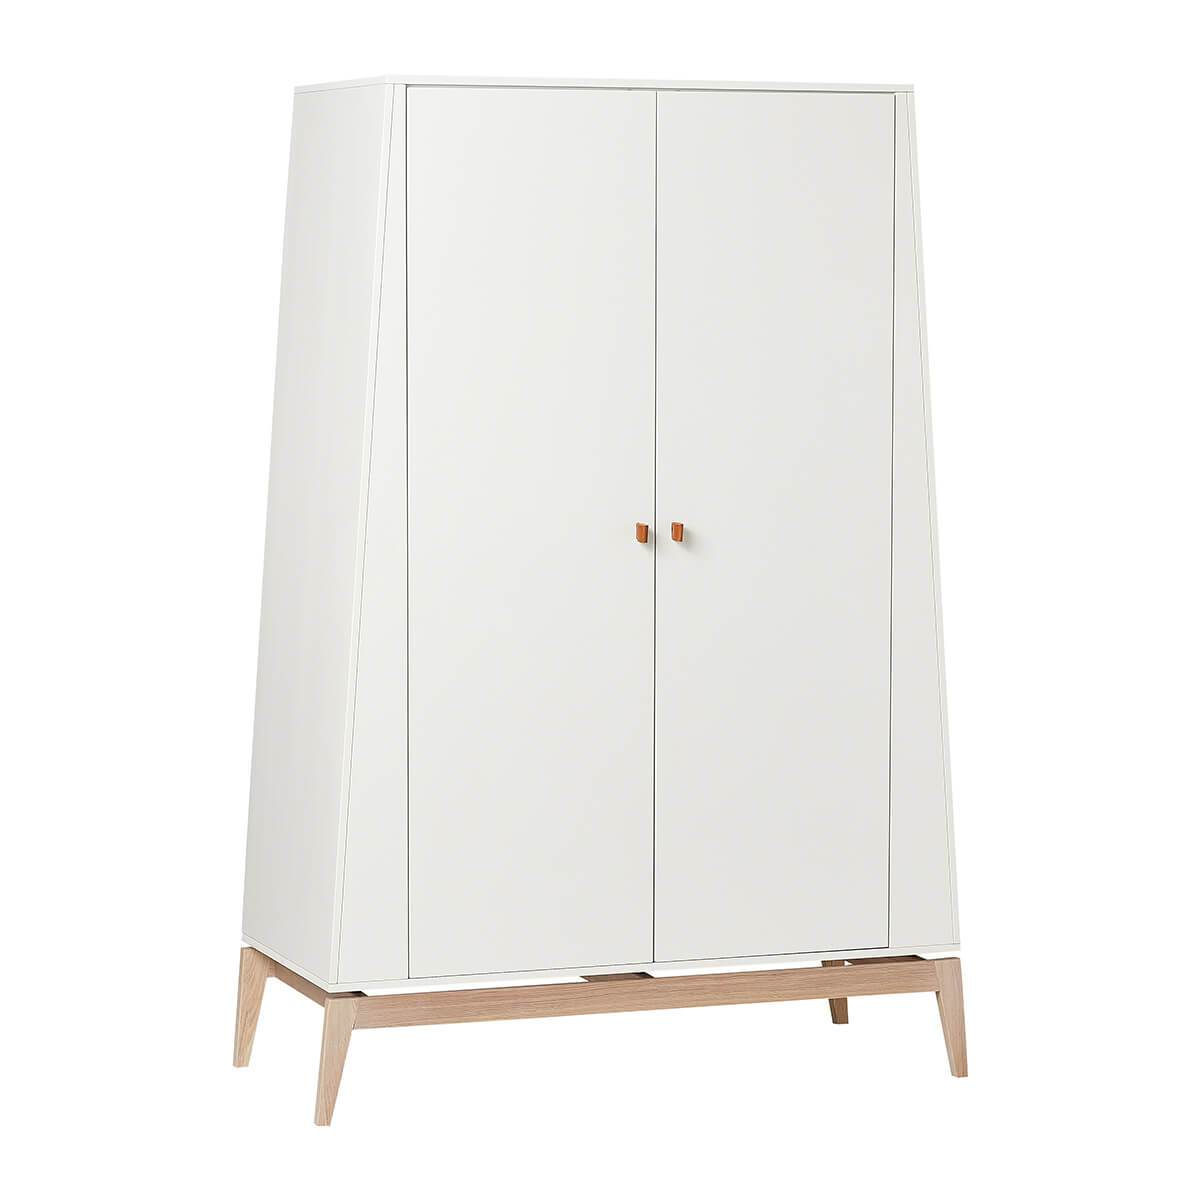 Leander Luna Wardrobe (large) - White/Oak